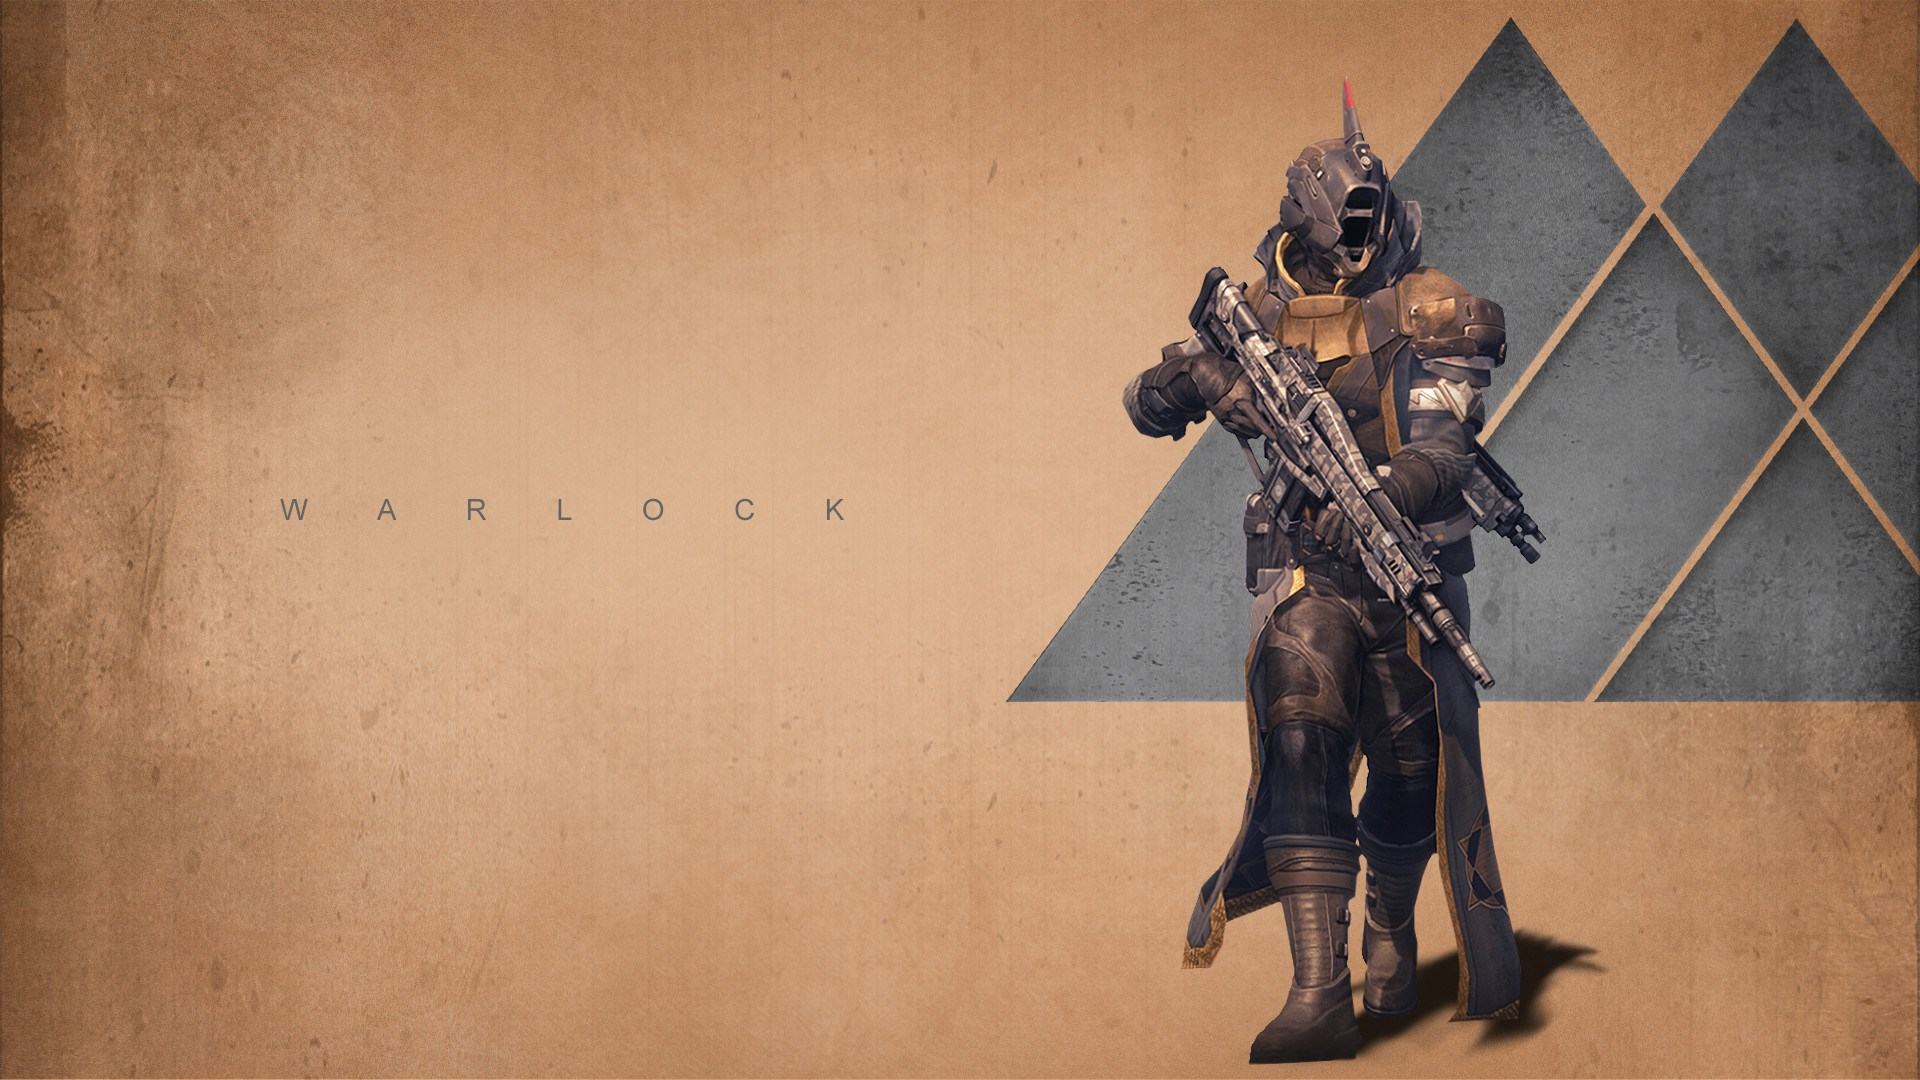 Also you can check out a ton more Destiny wallpapers here 1920x1080